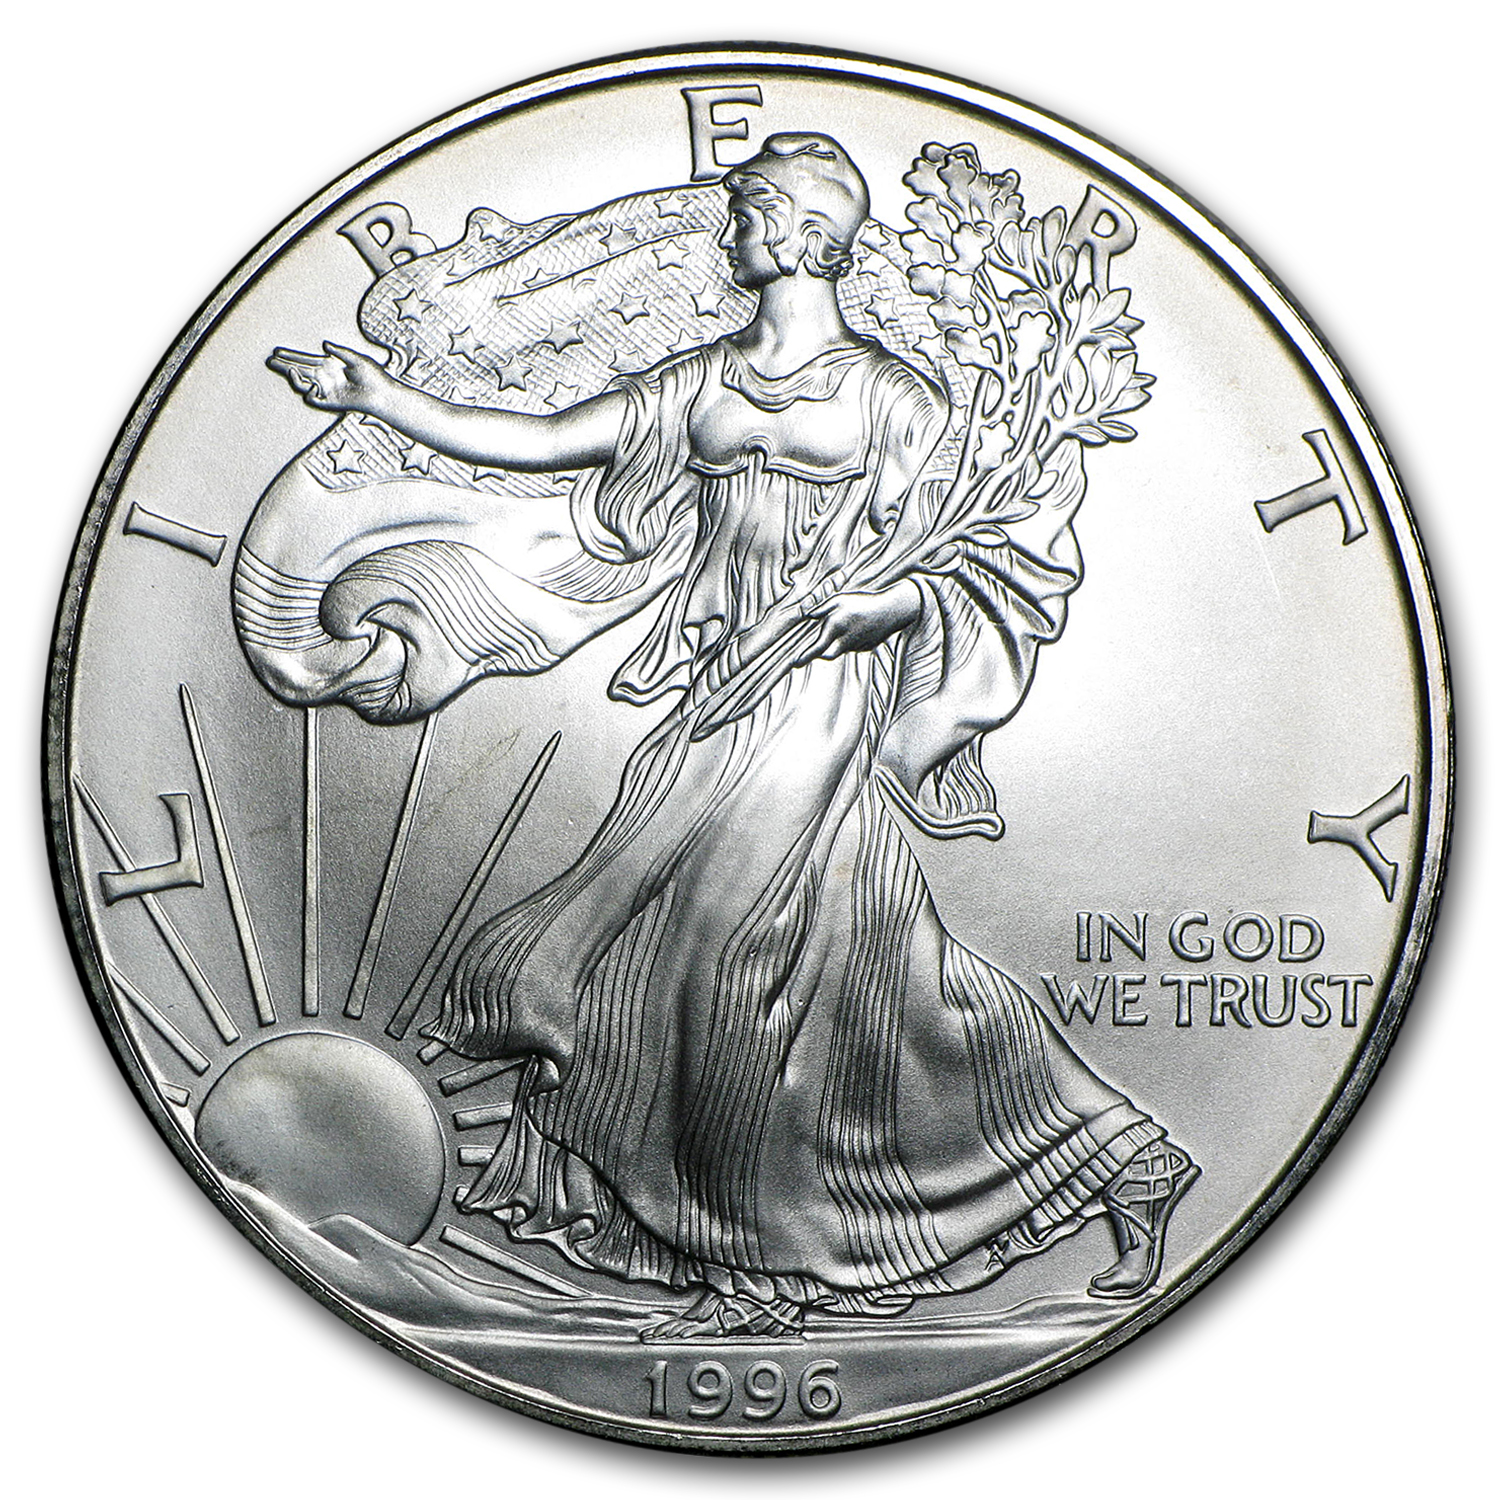 1996 1 oz Silver American Eagle (Imperfections)